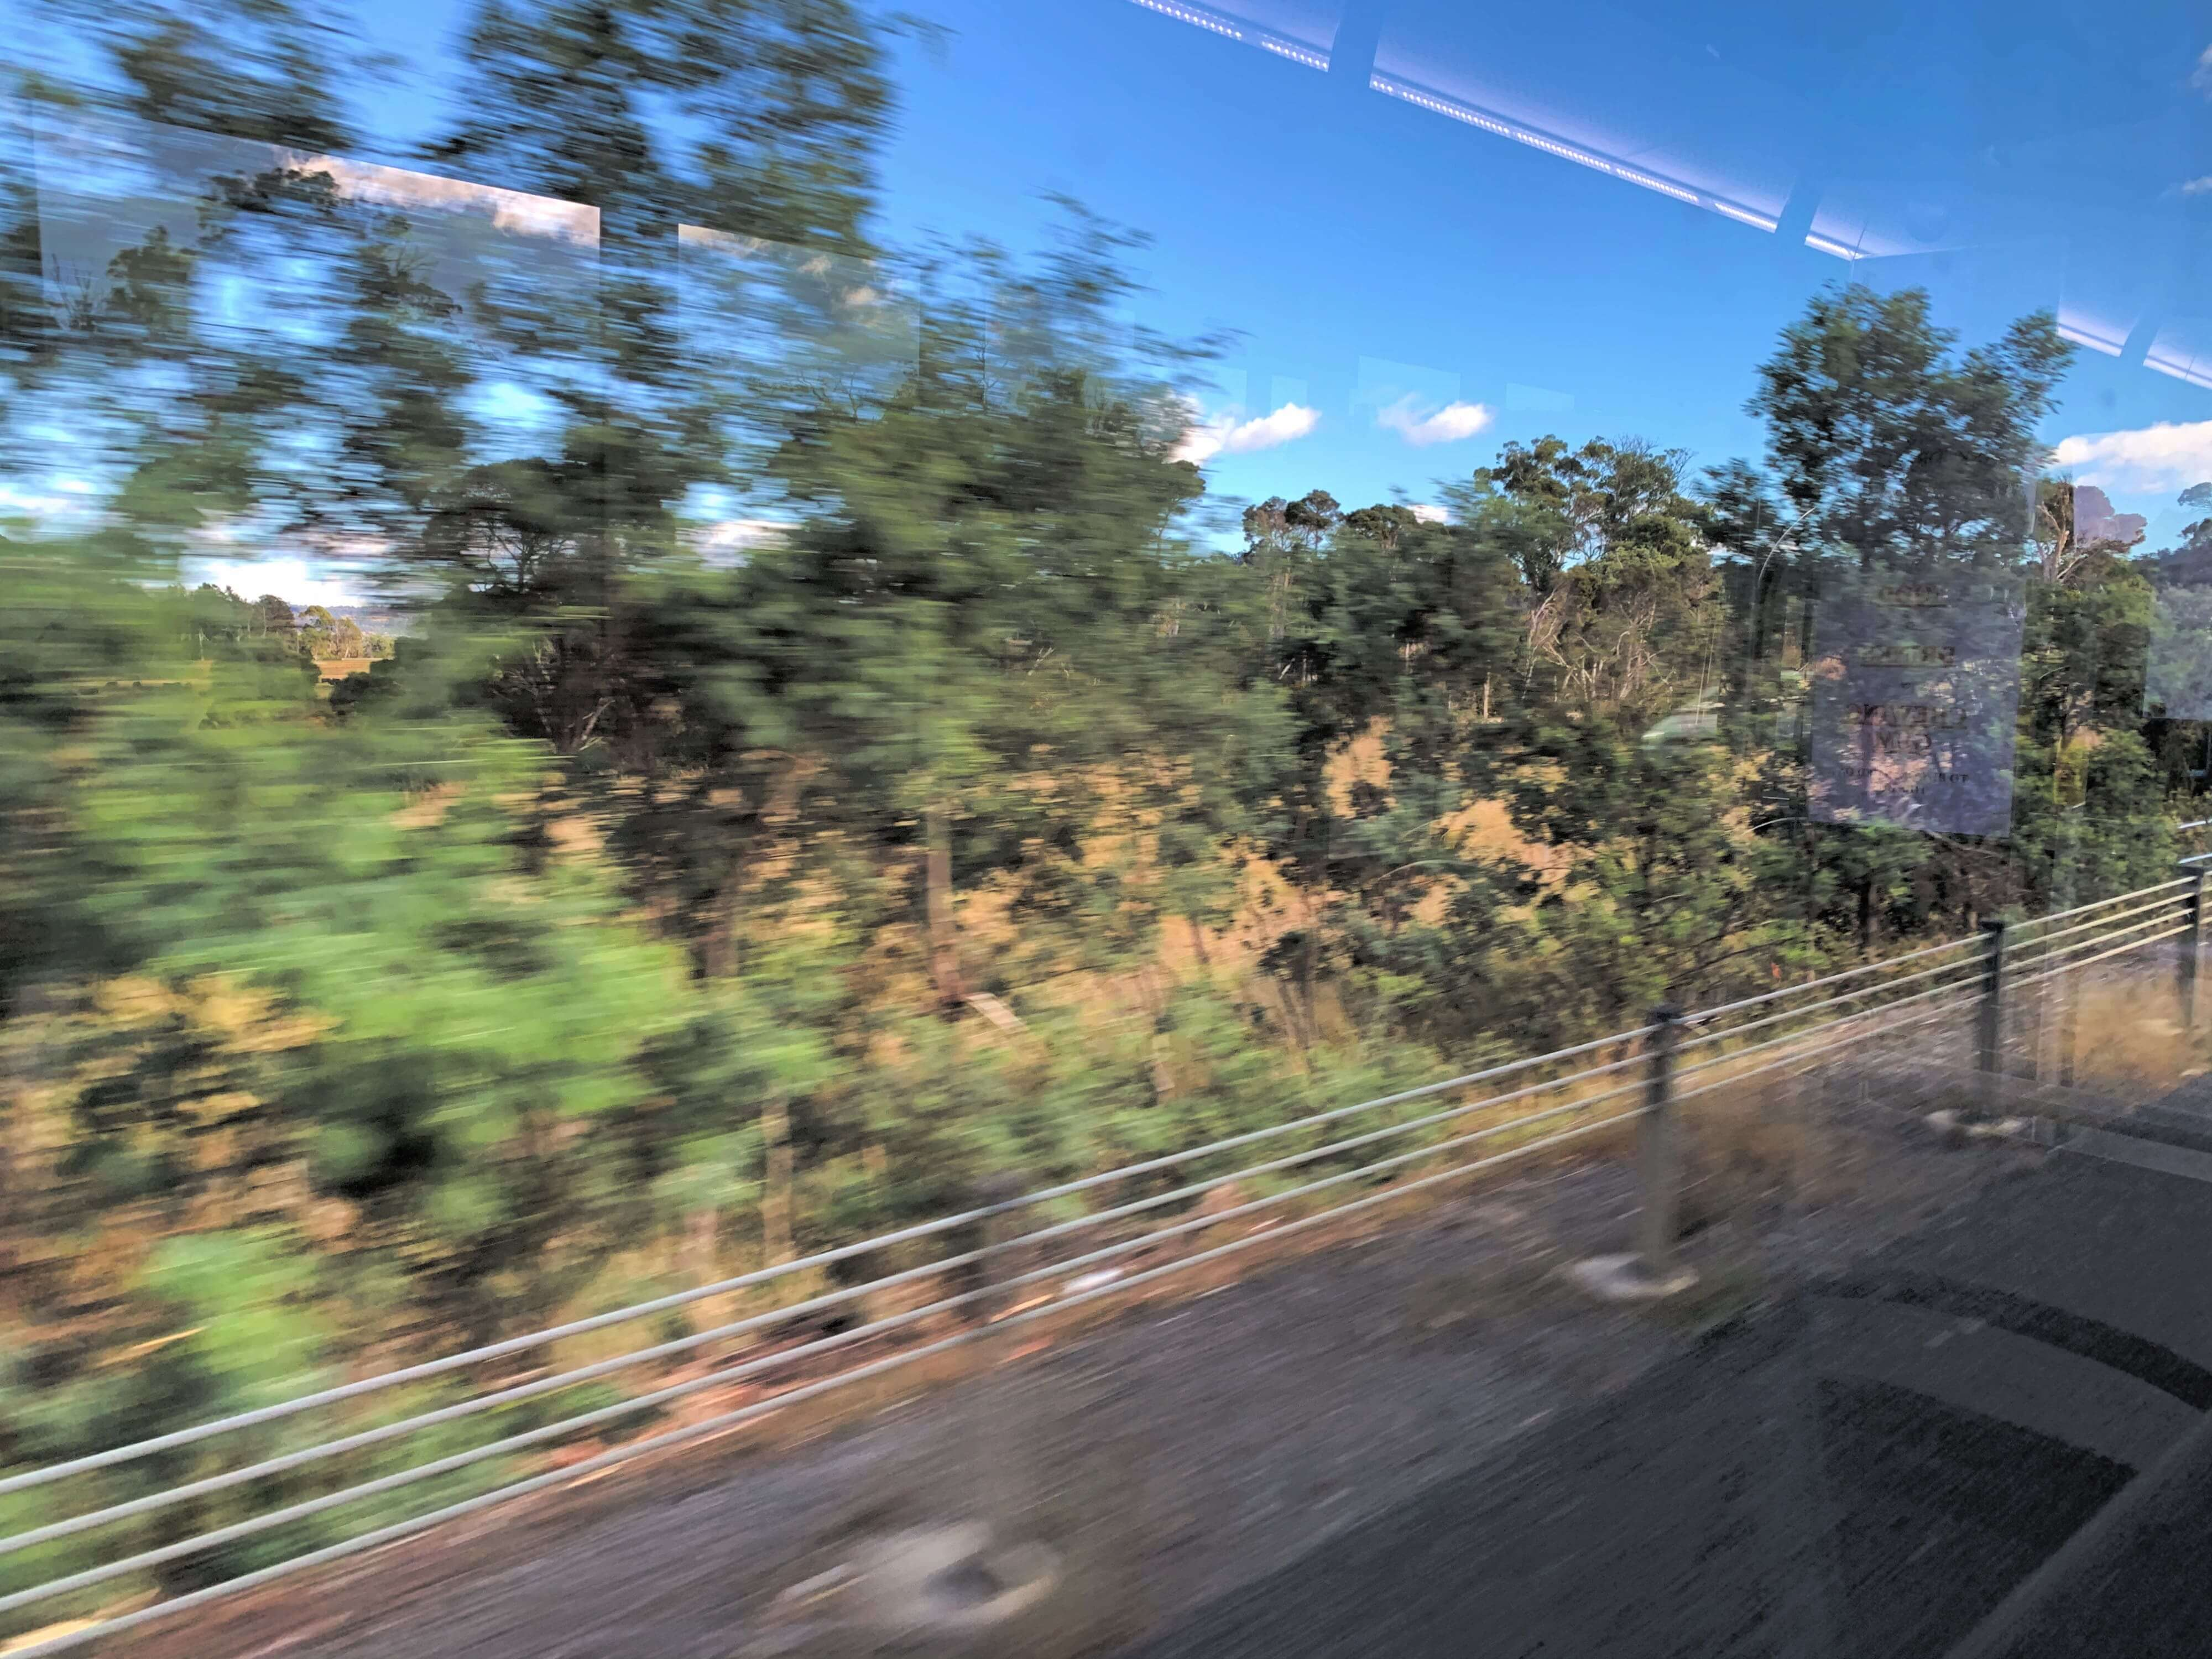 blurry image of trees passing by as seen from inside a moving bus